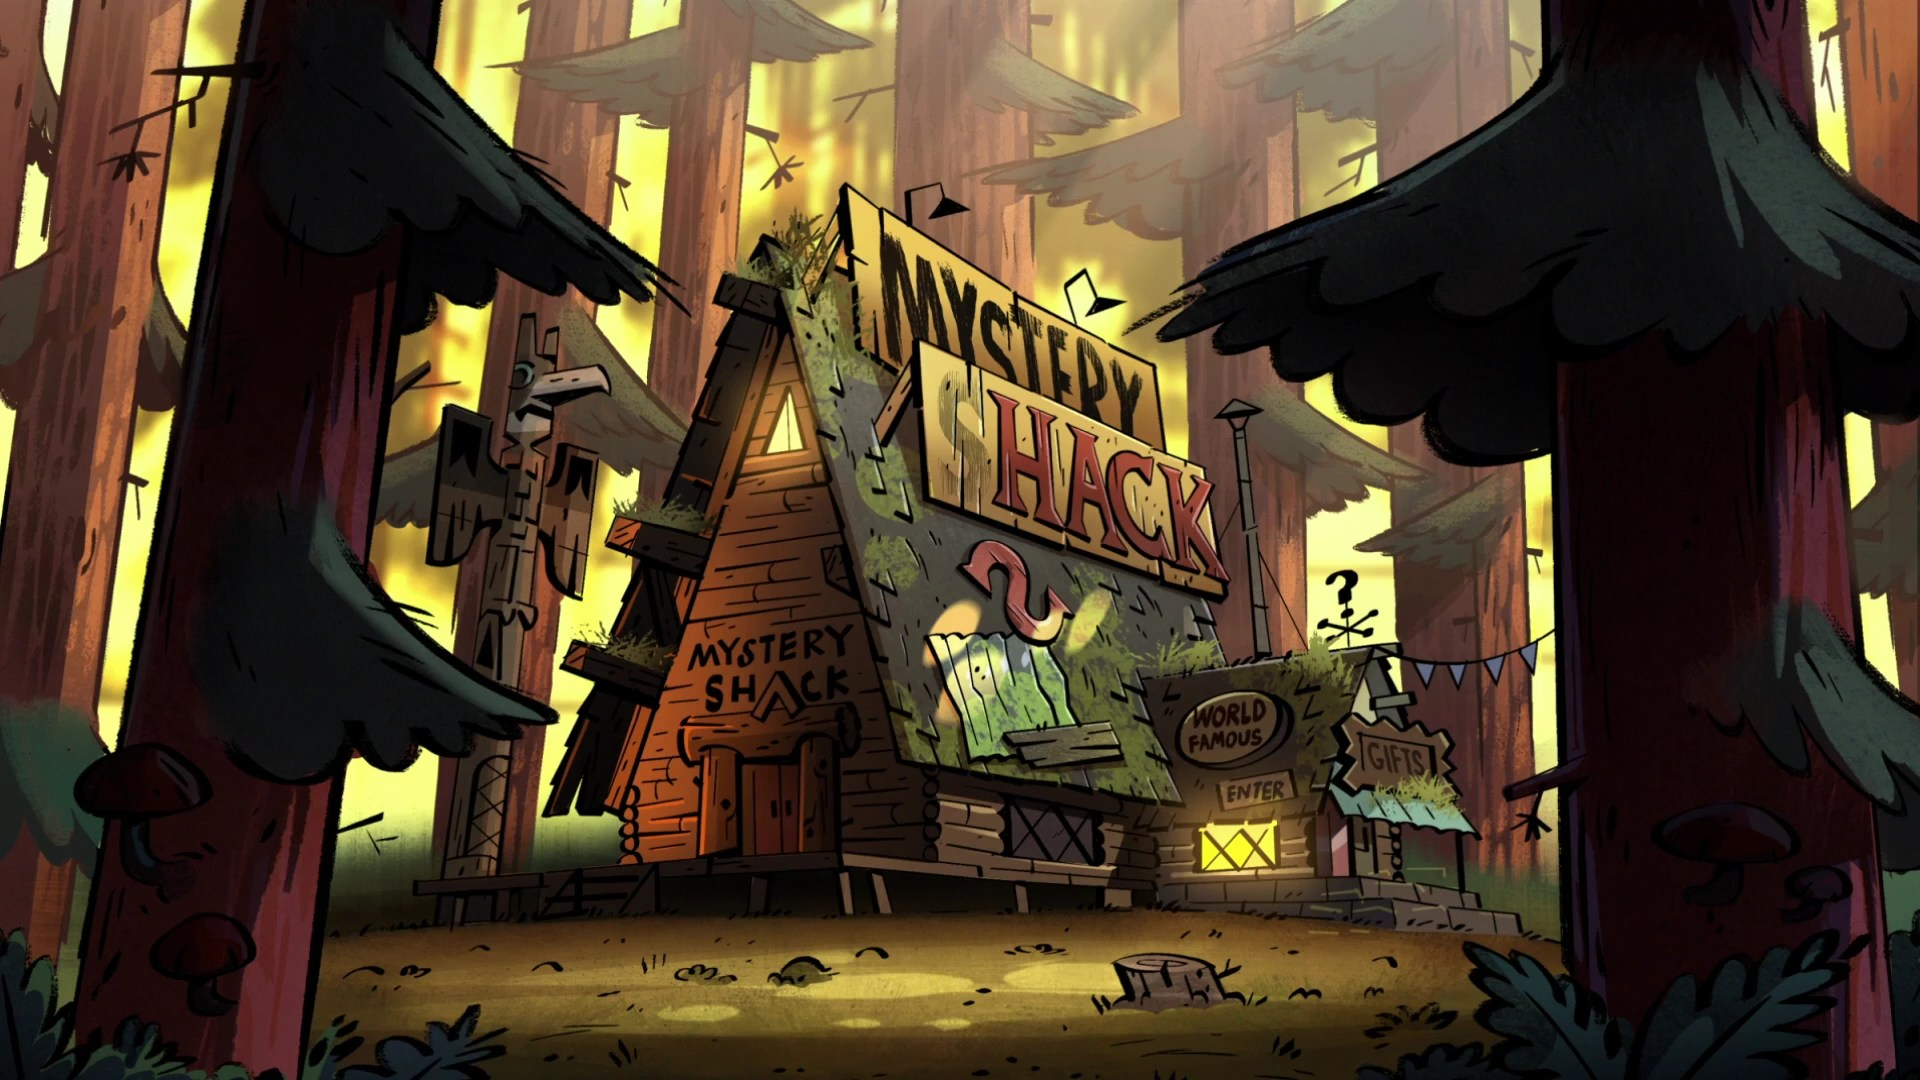 Gravity Fall Computer Wallpaper Image S2e1 Mystery Shack Day Png Gravity Falls Wiki